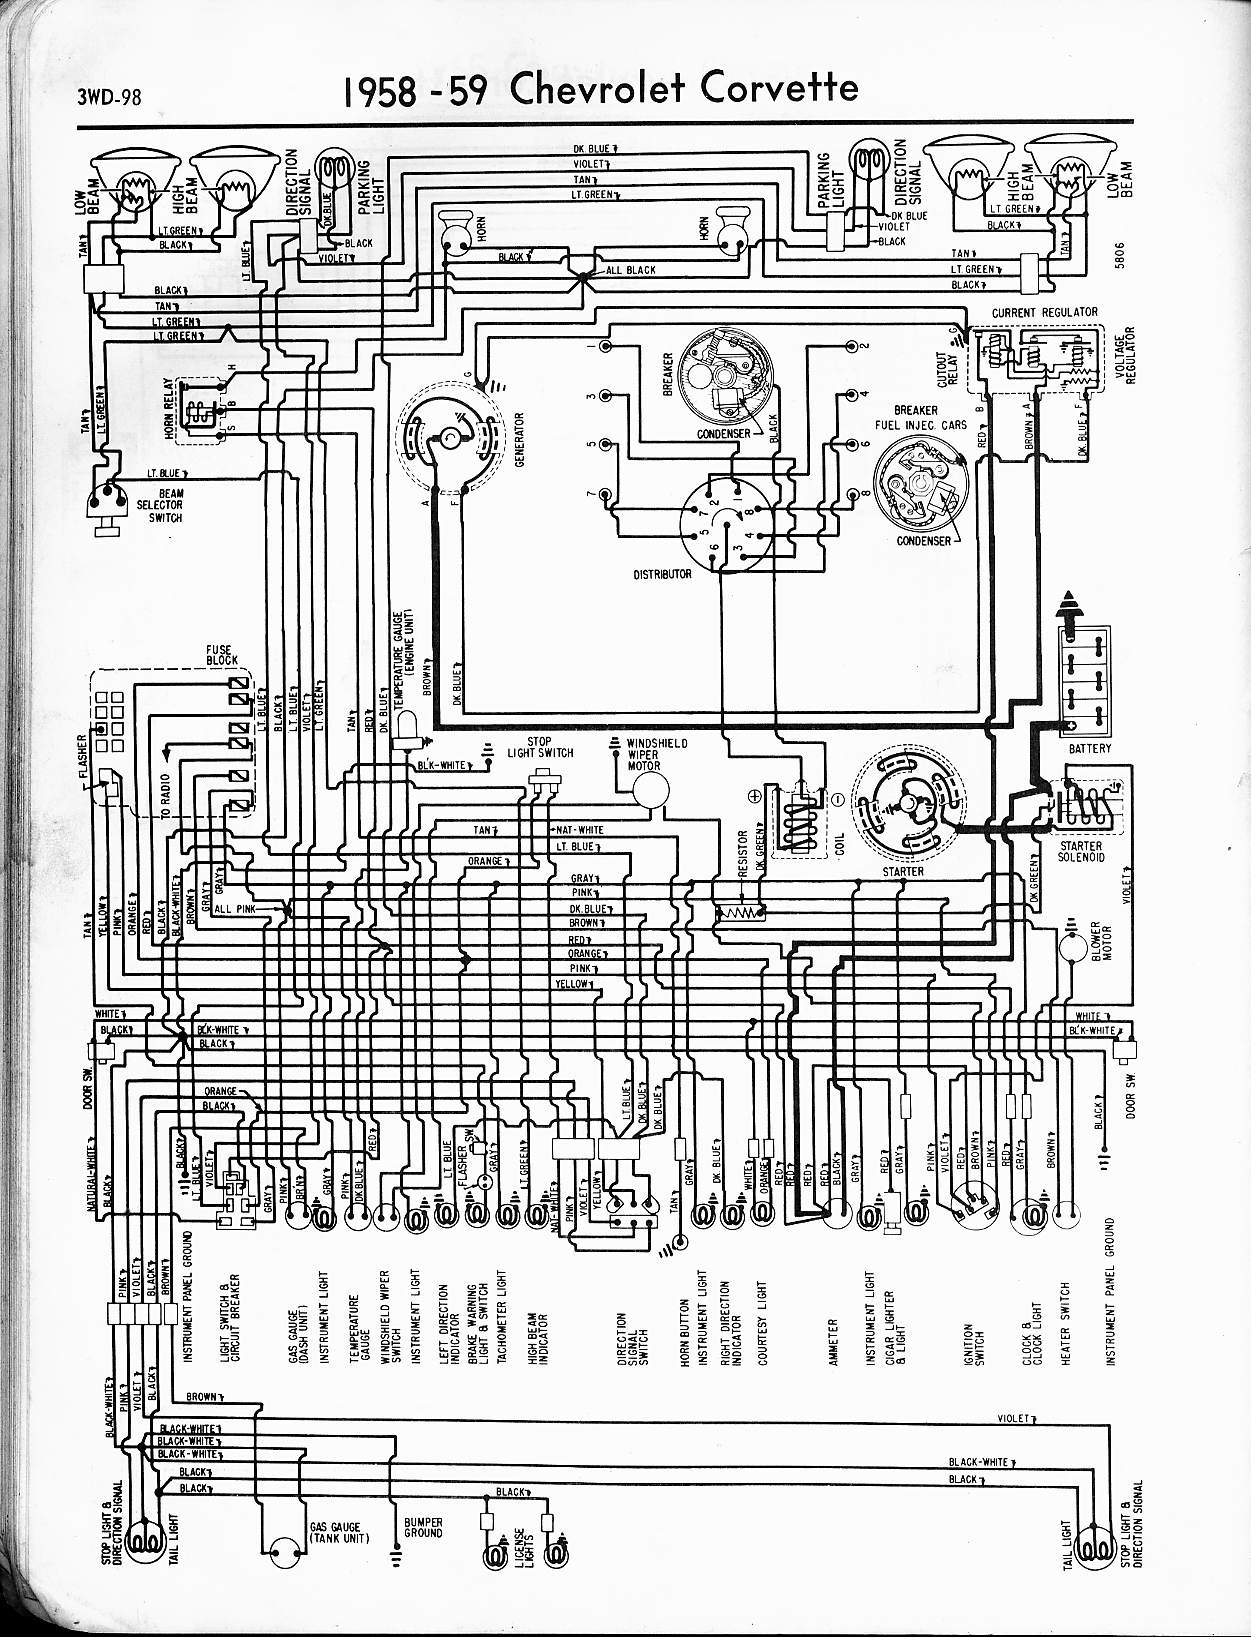 1979 Chevy Truck Wiring Diagram